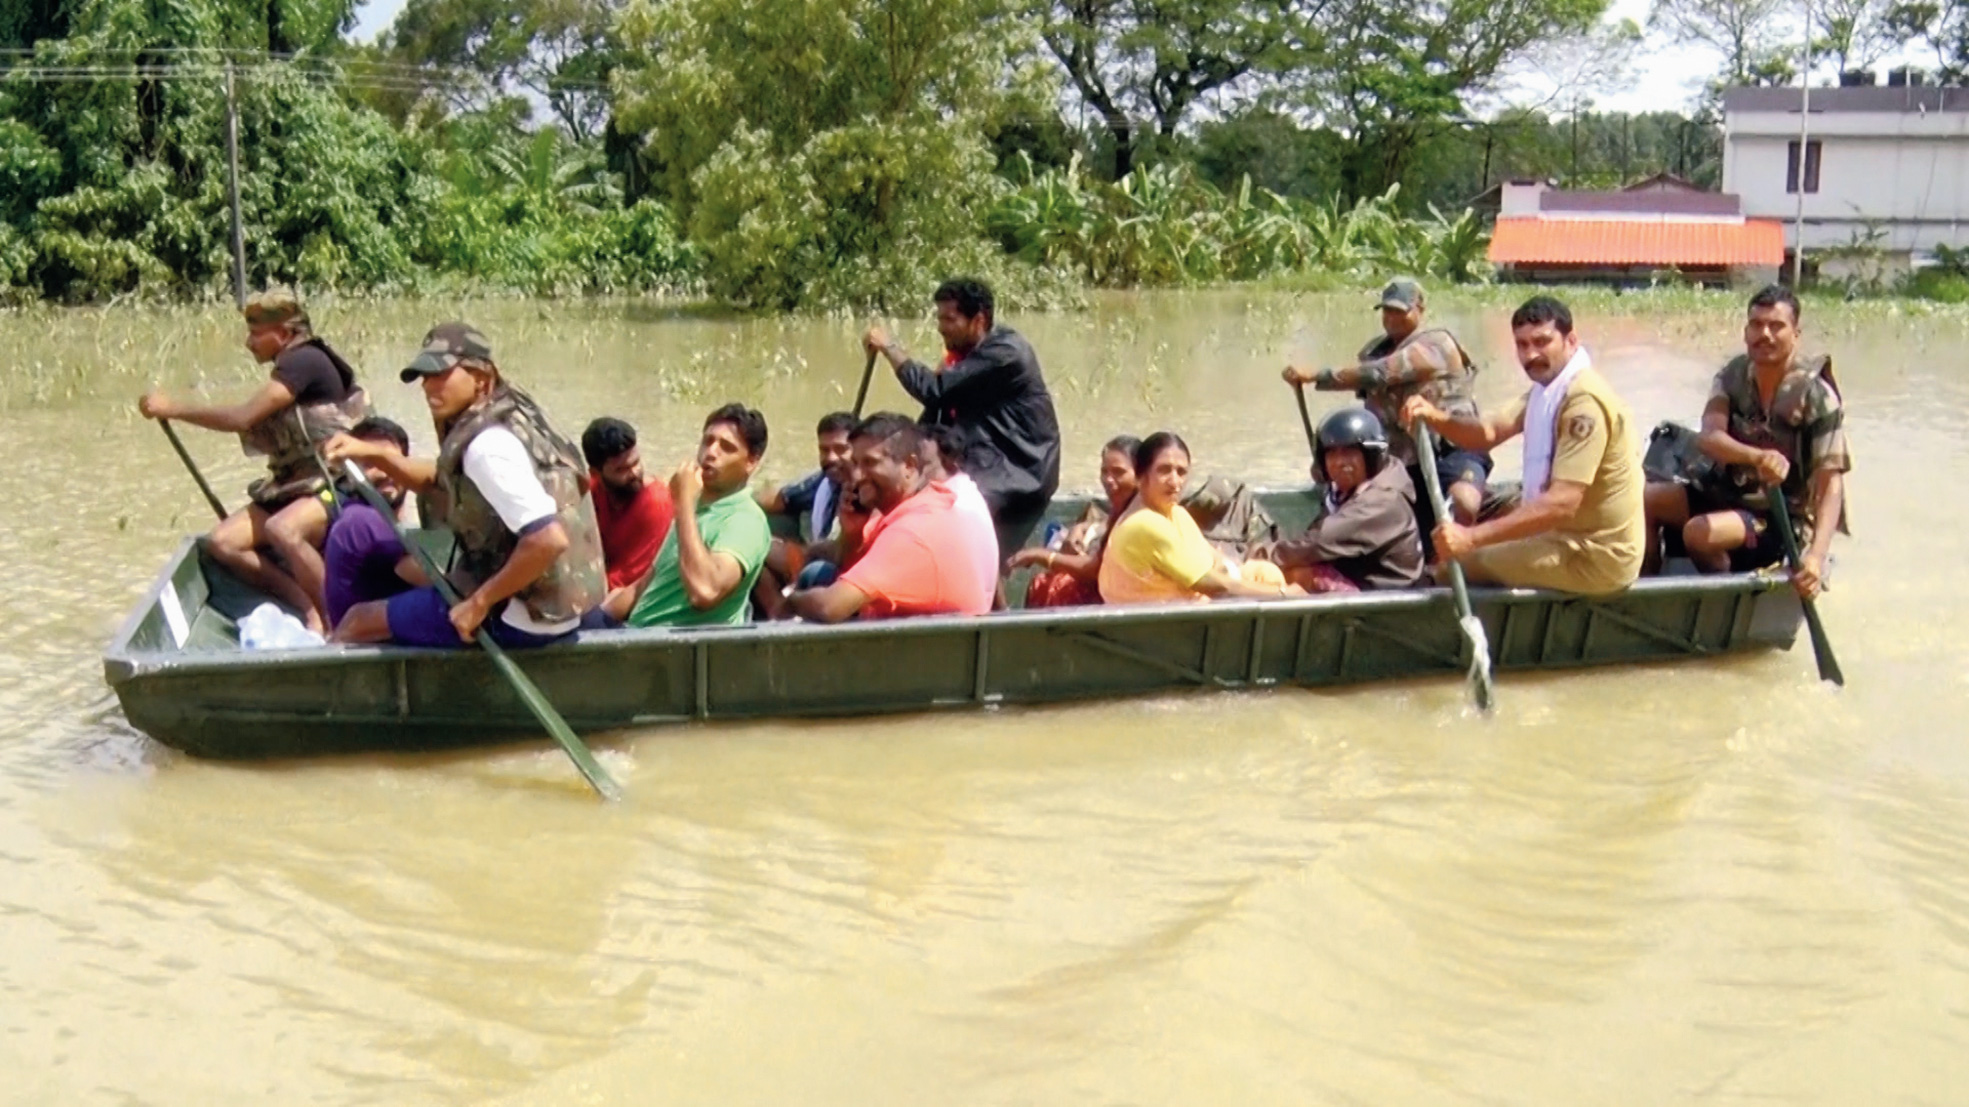 Scene from the recent flood in Kerala that Discovery Channel has featured in the documentary.